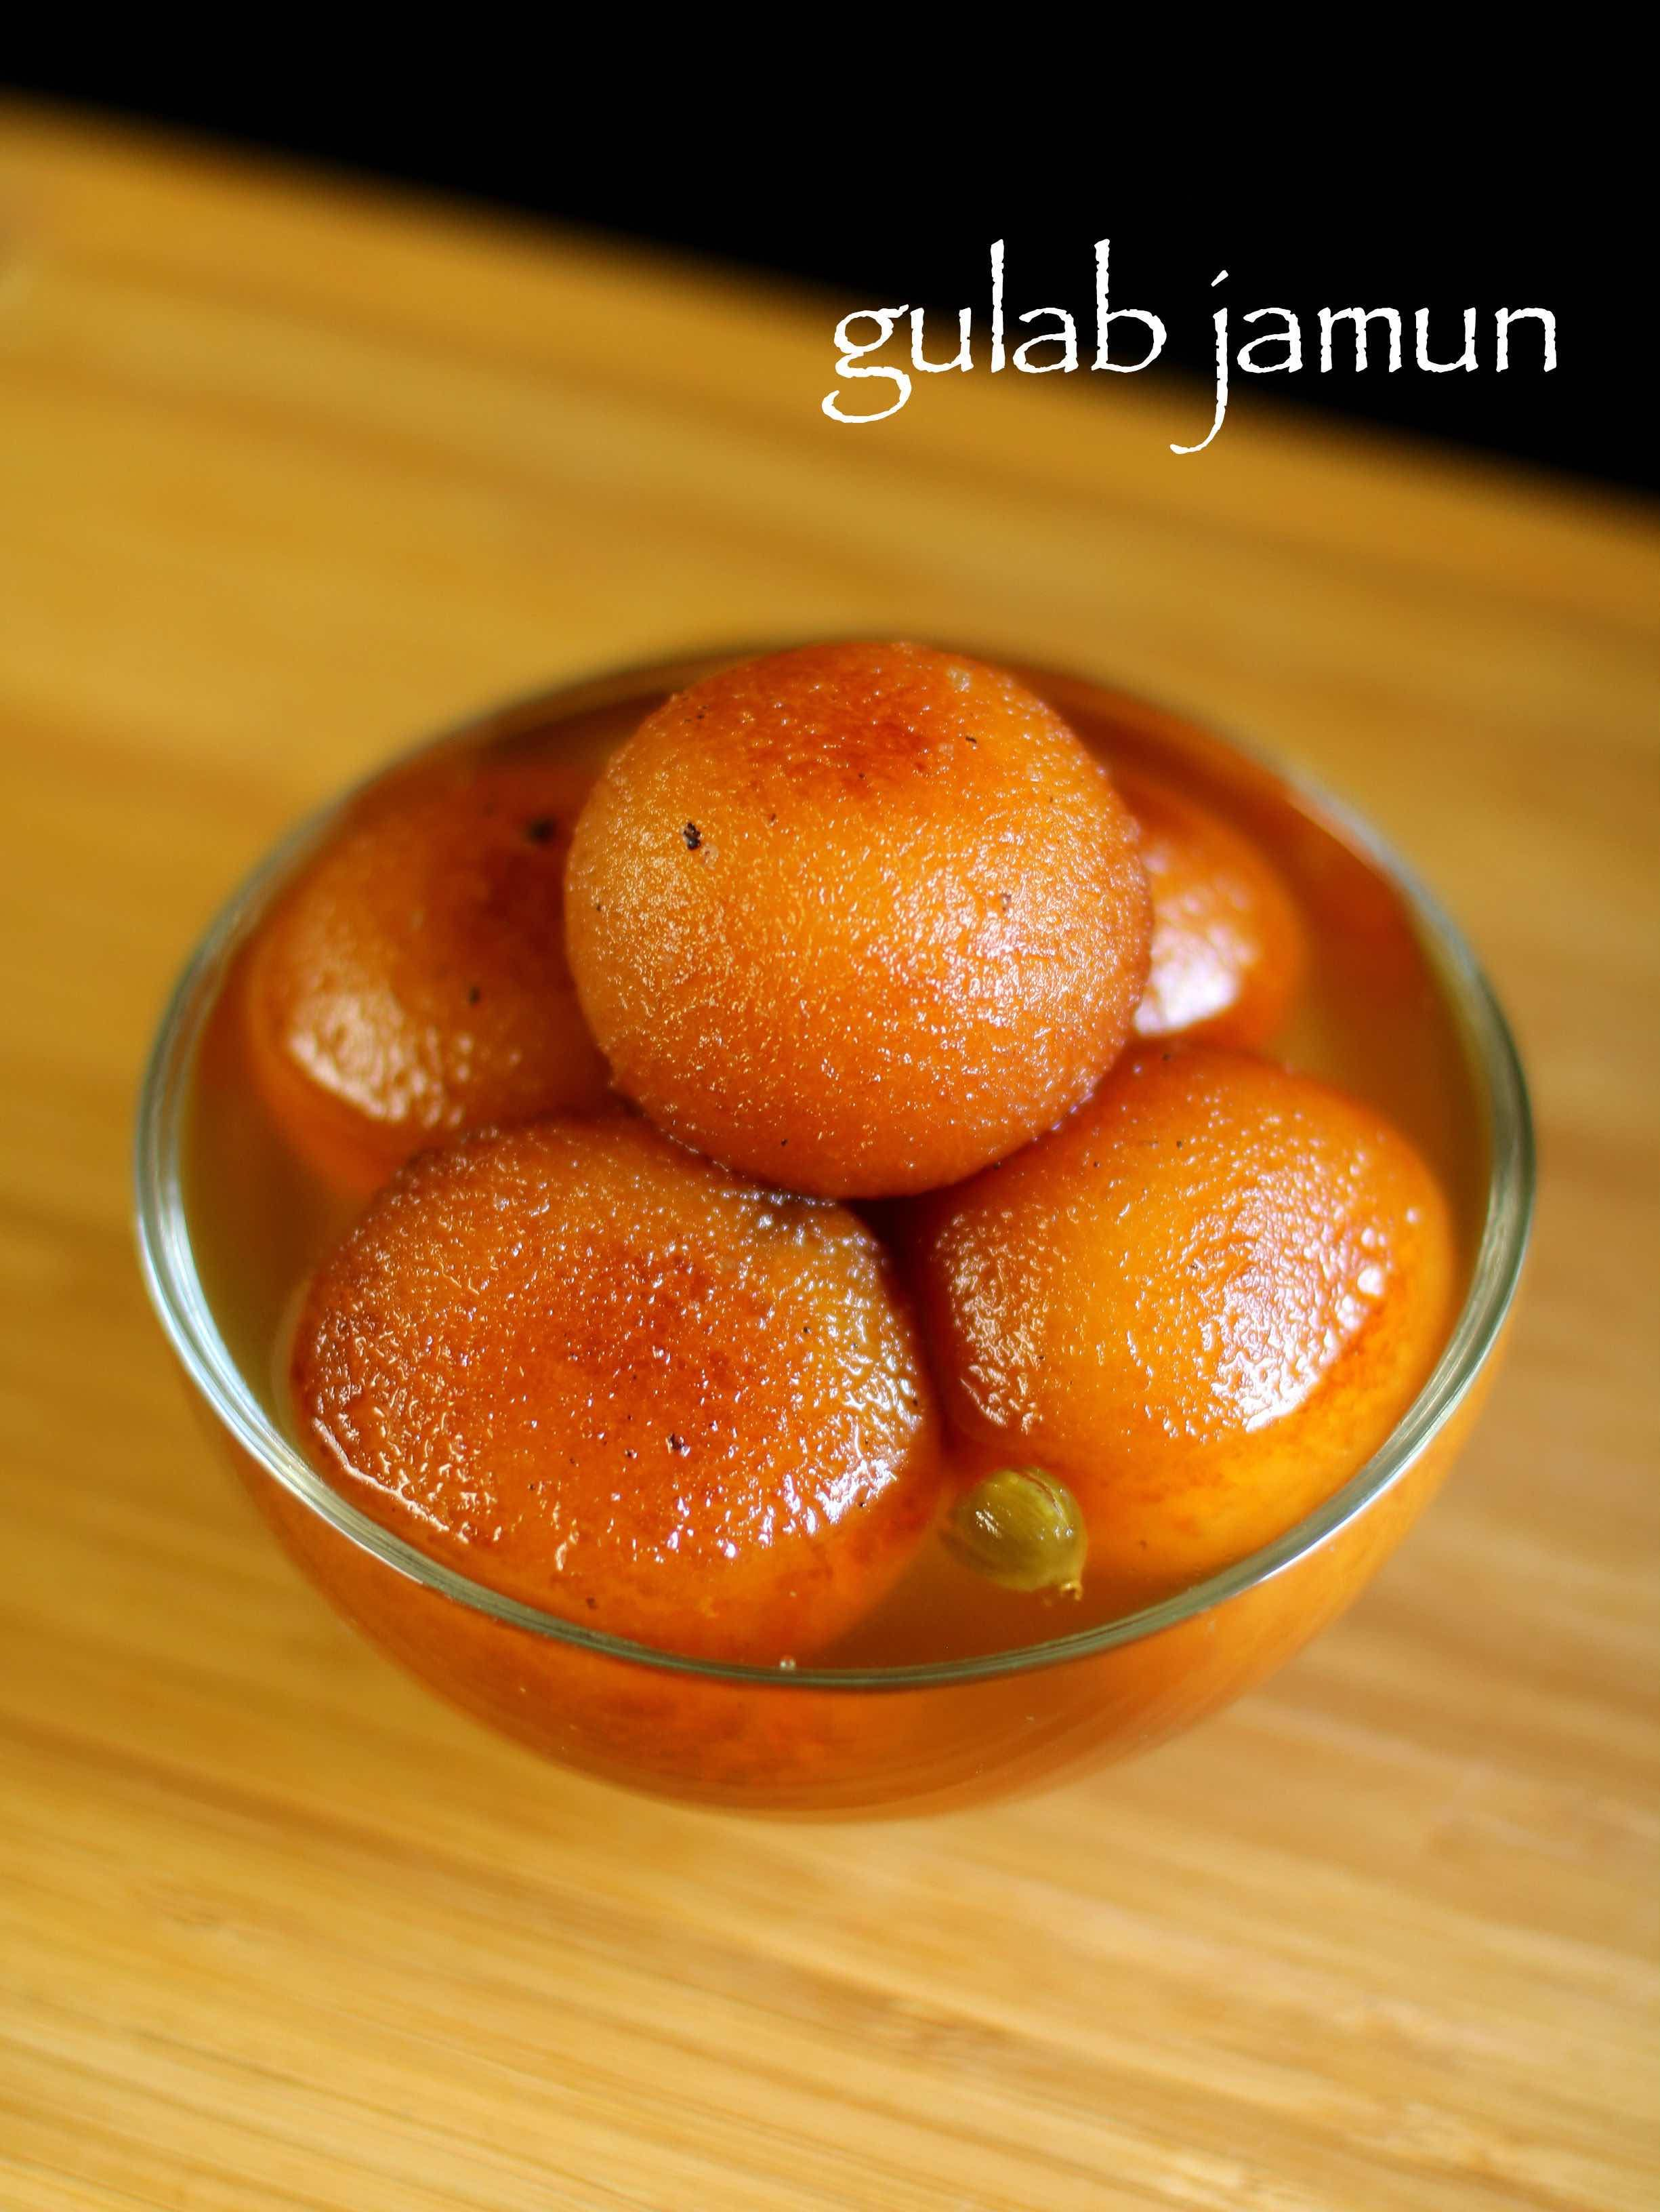 Gulab jamun recipe gulab jamun with milk powder recipe http gulab jamun recipe gulab jamun with milk powder recipe httphebbarskitchen indian dessert forumfinder Gallery